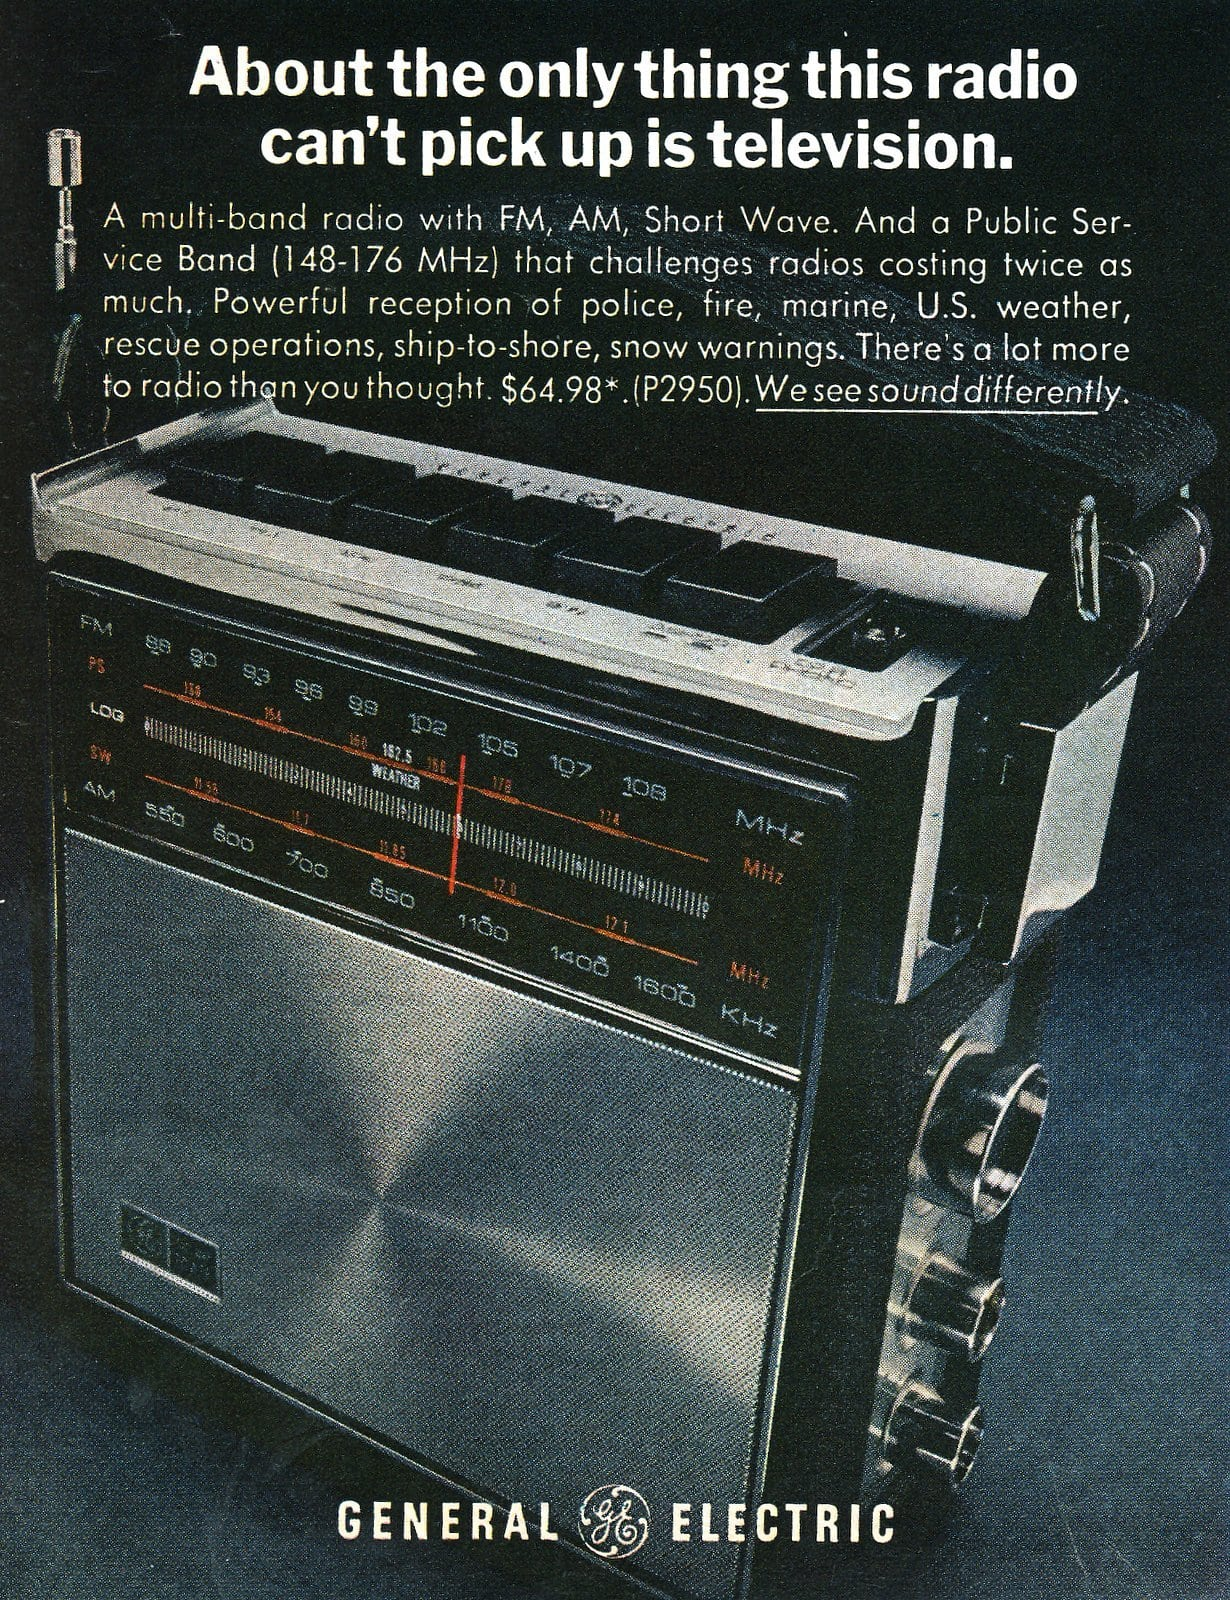 Multi-band radio with FM, AM and short wave (1970)